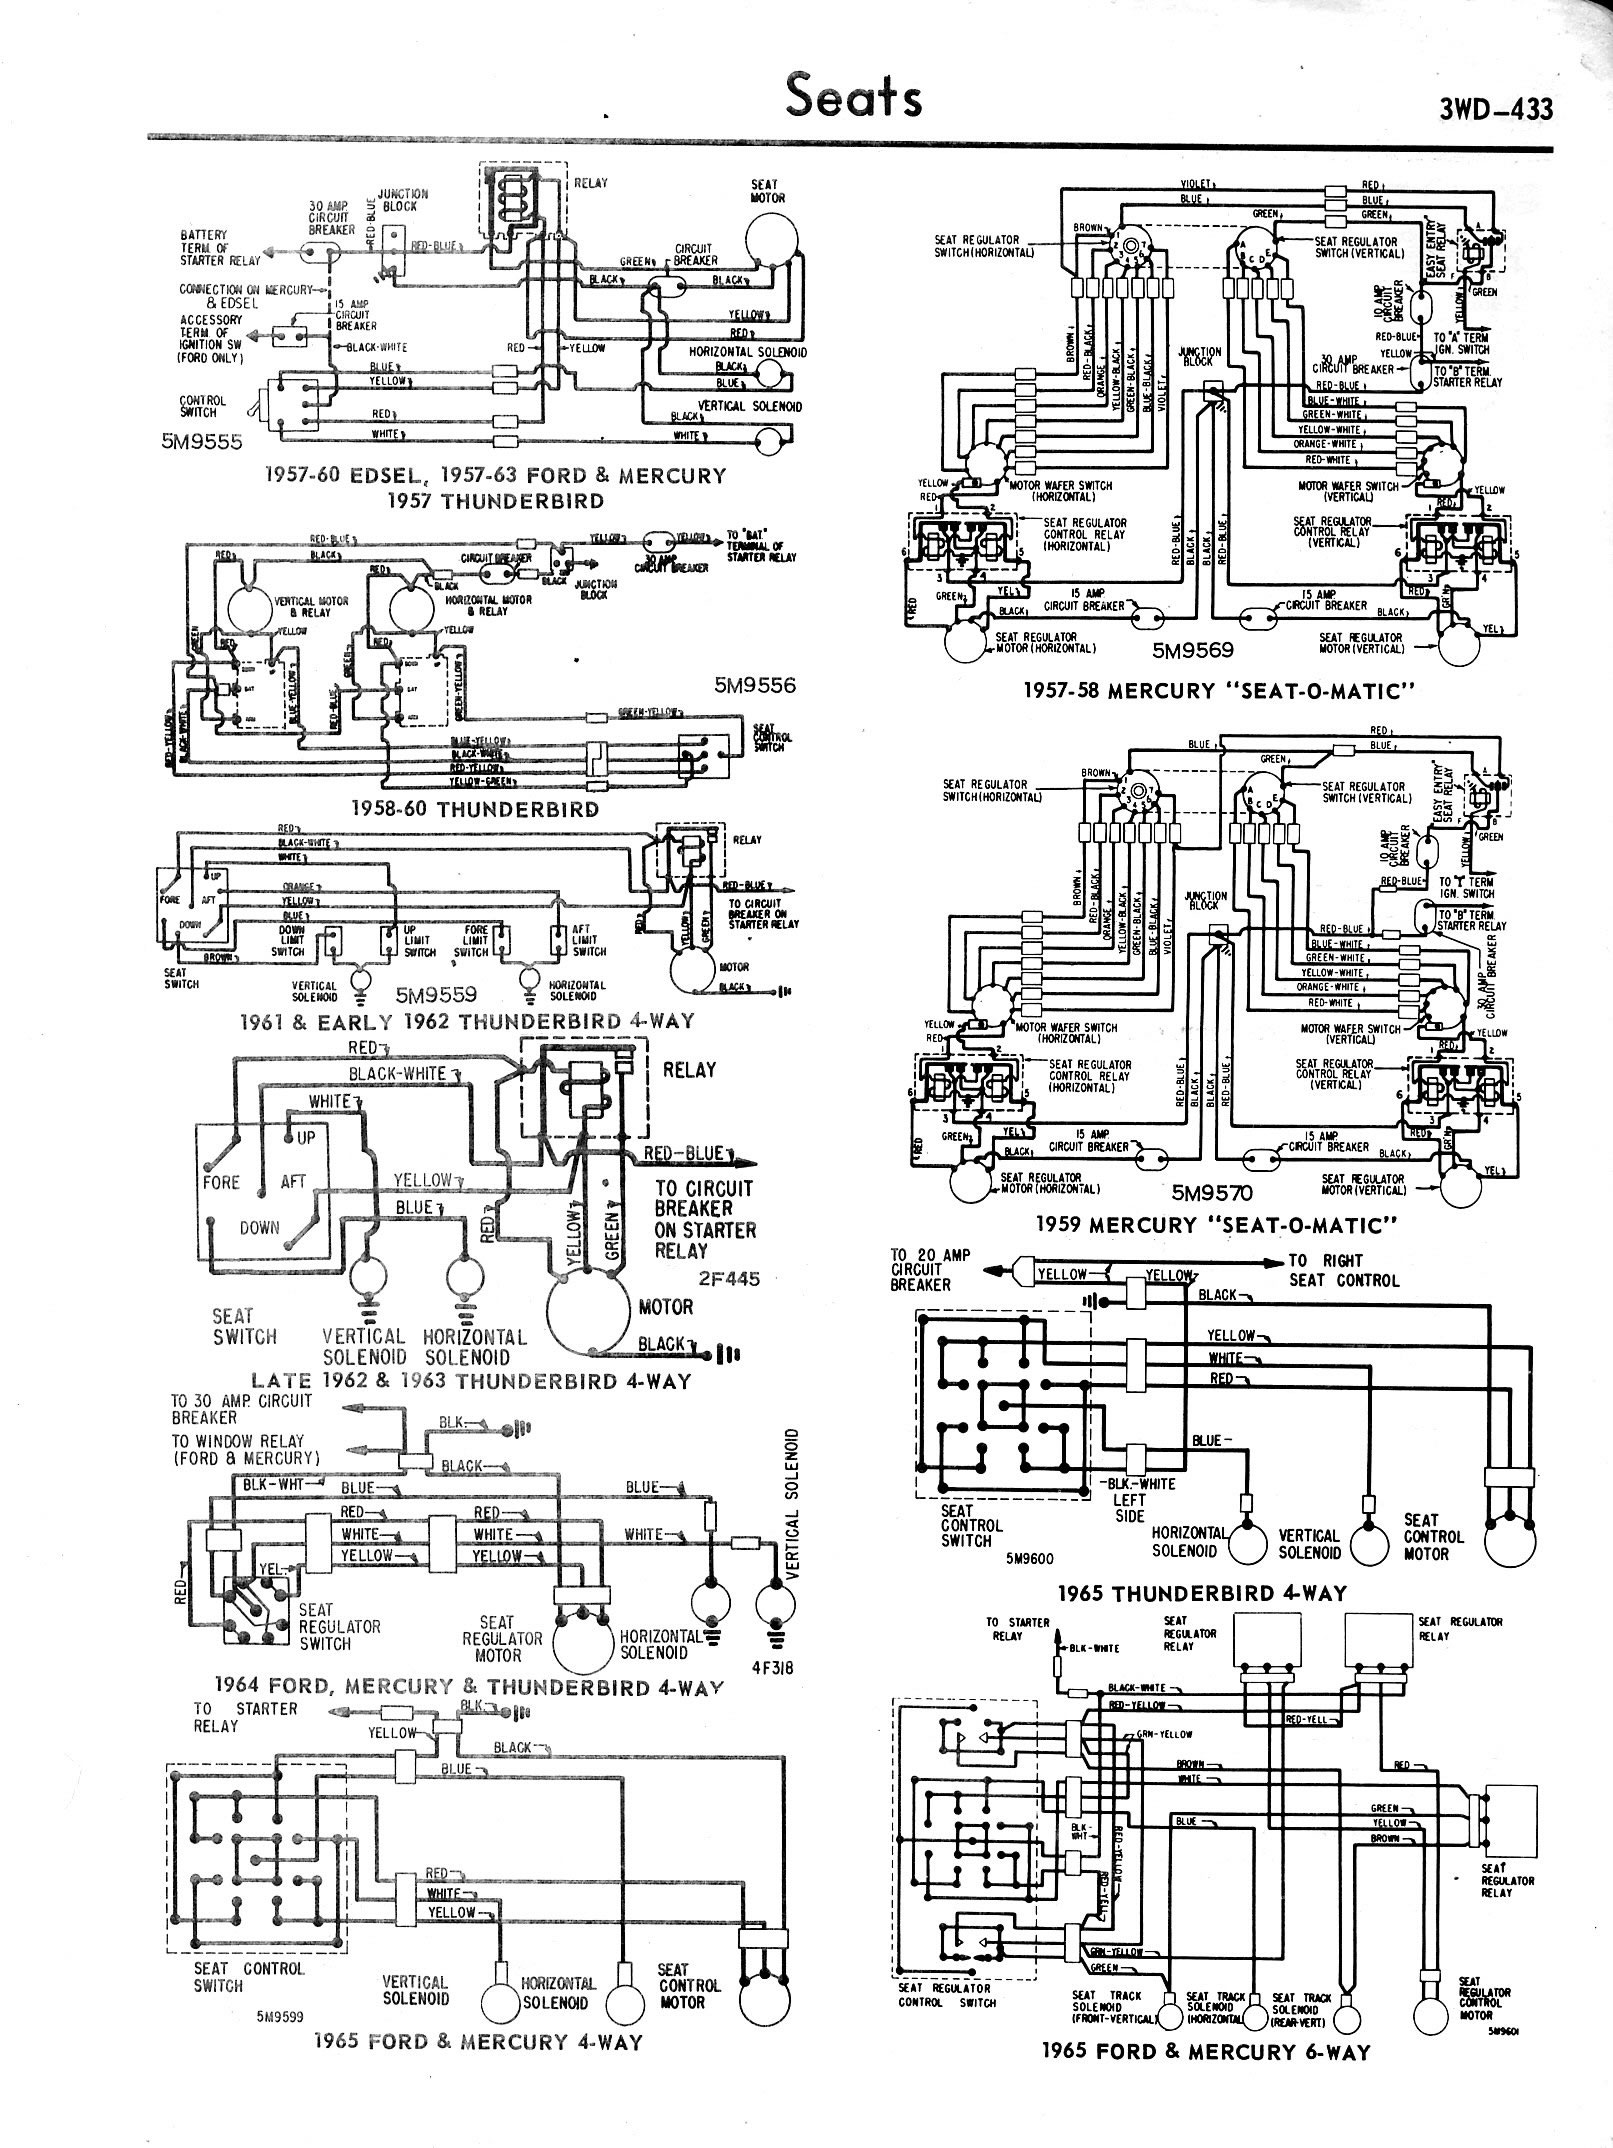 Ford Diagrams 1965 F100 Turn Signal Wiring Diagram 57 64 Mercury 59 Seat O Matic 60 Edsel Thunderbird 4 Way 6